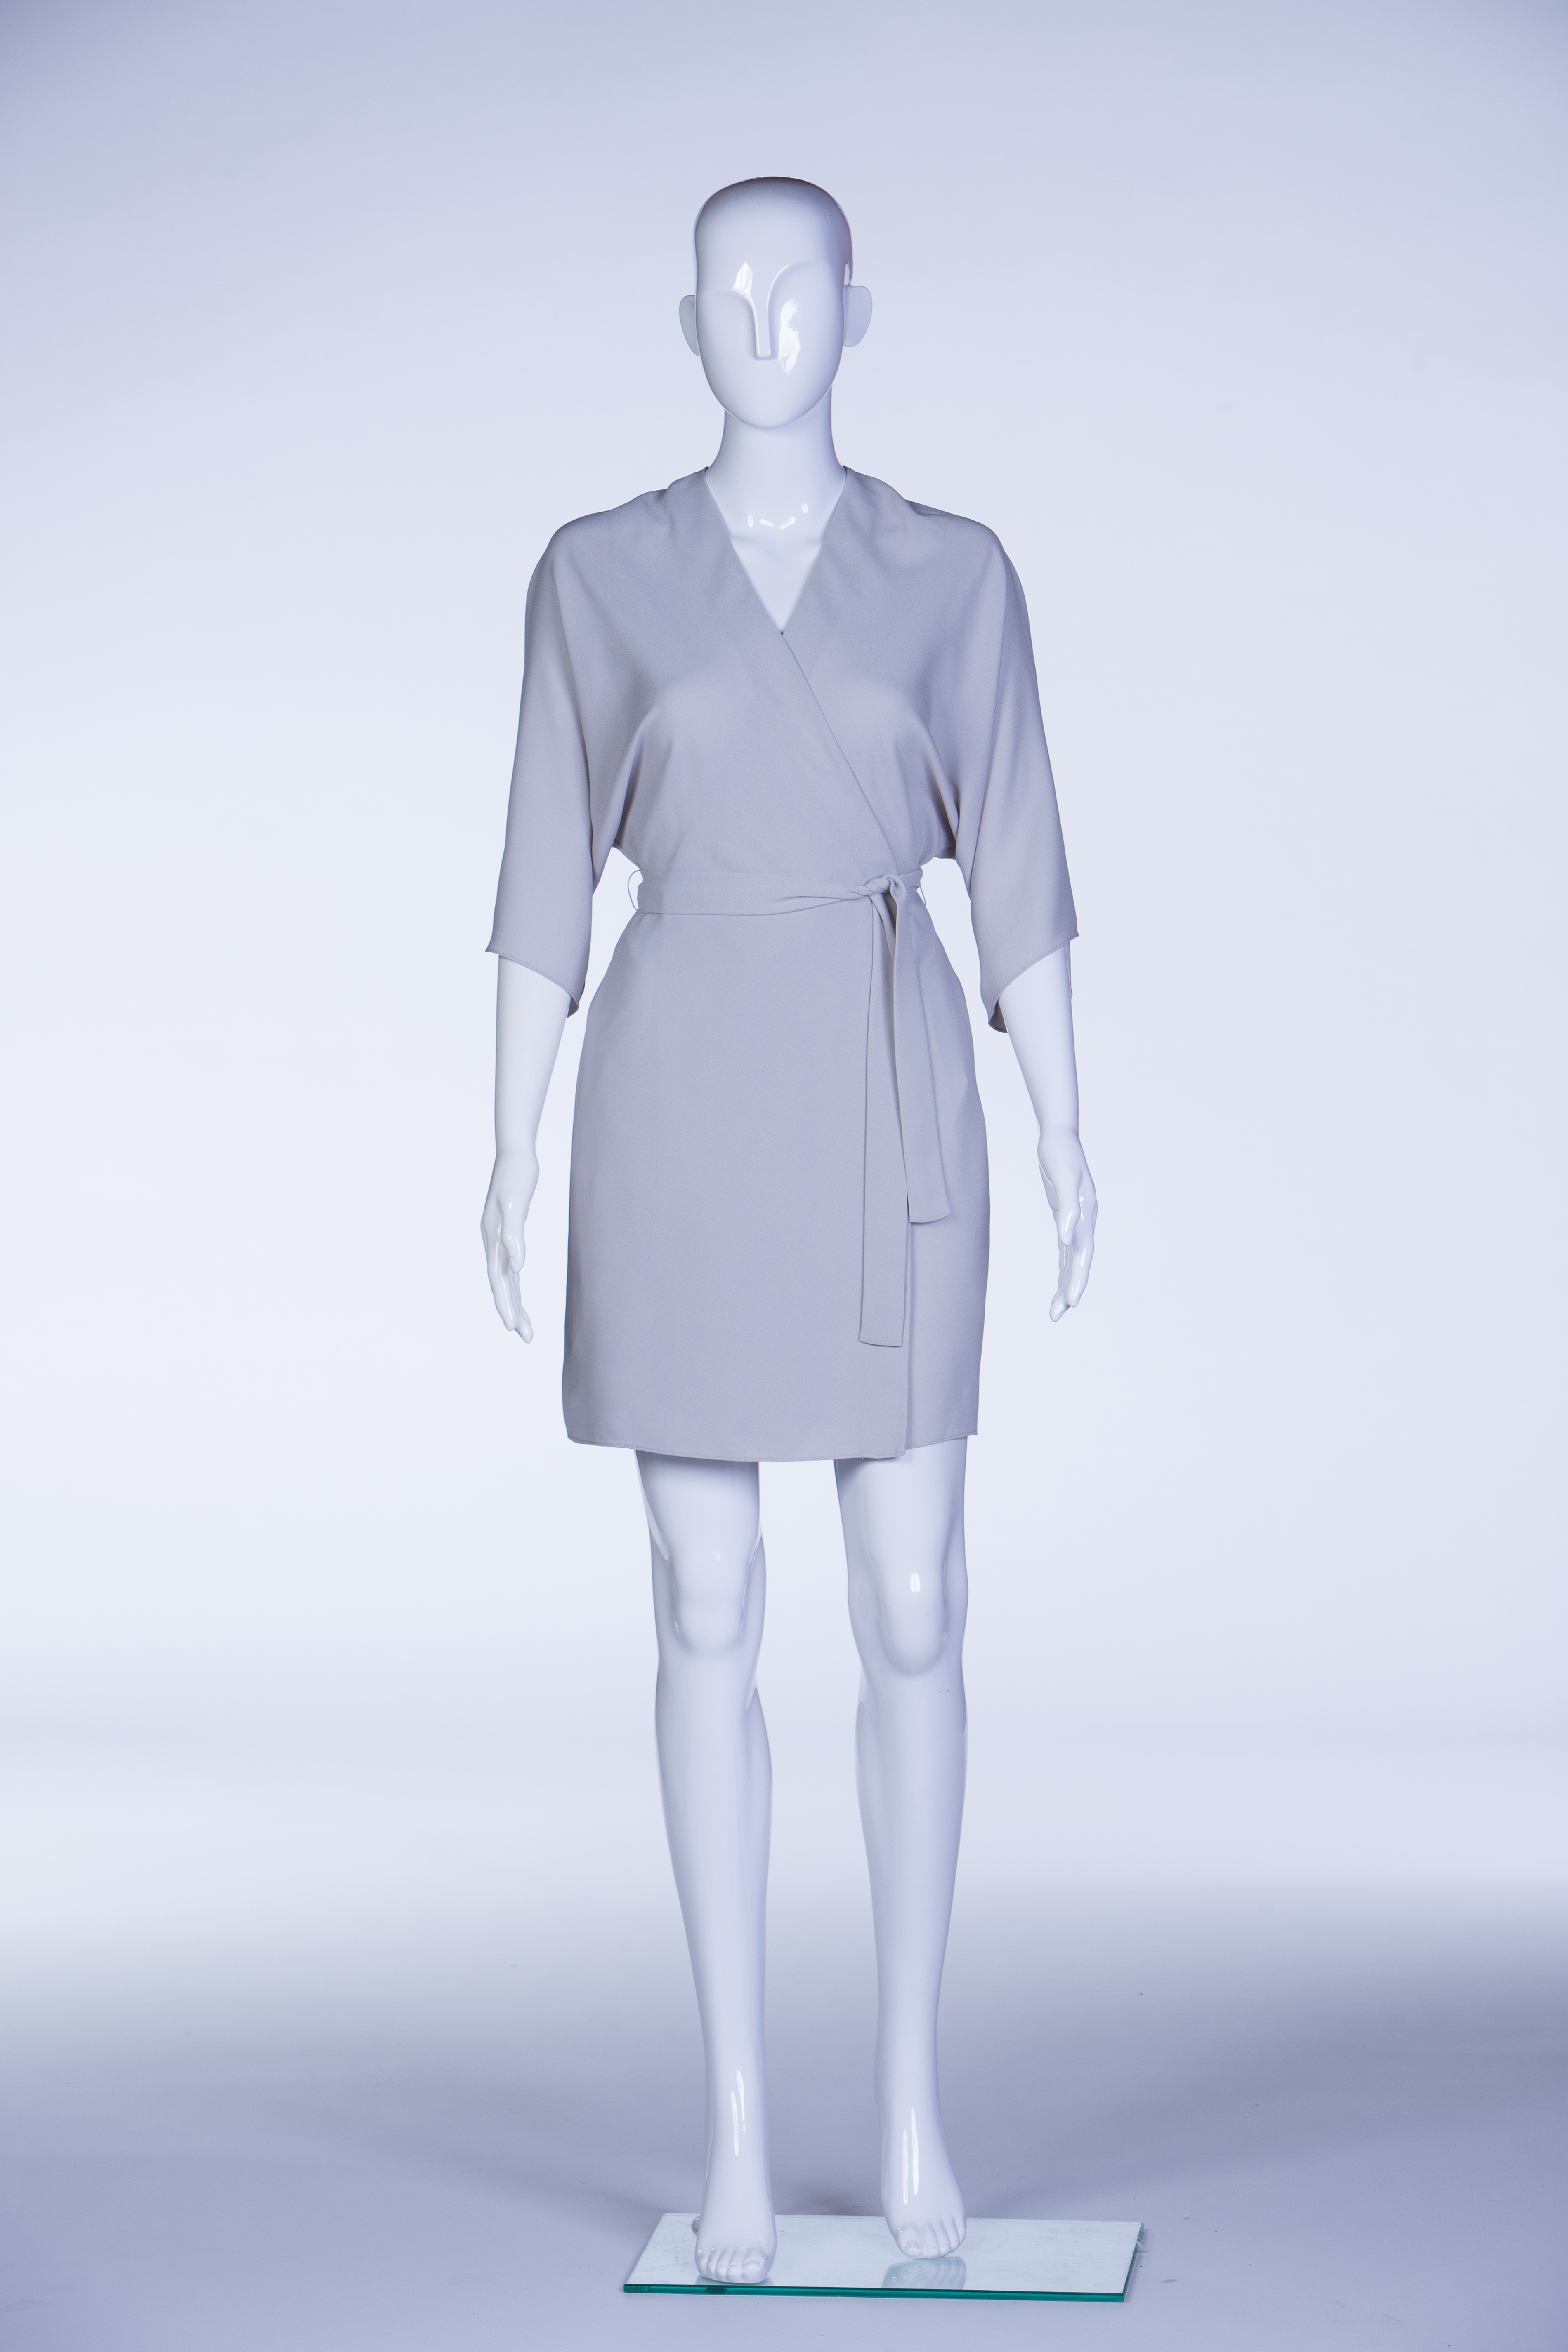 Mannequin wearing a grey dress